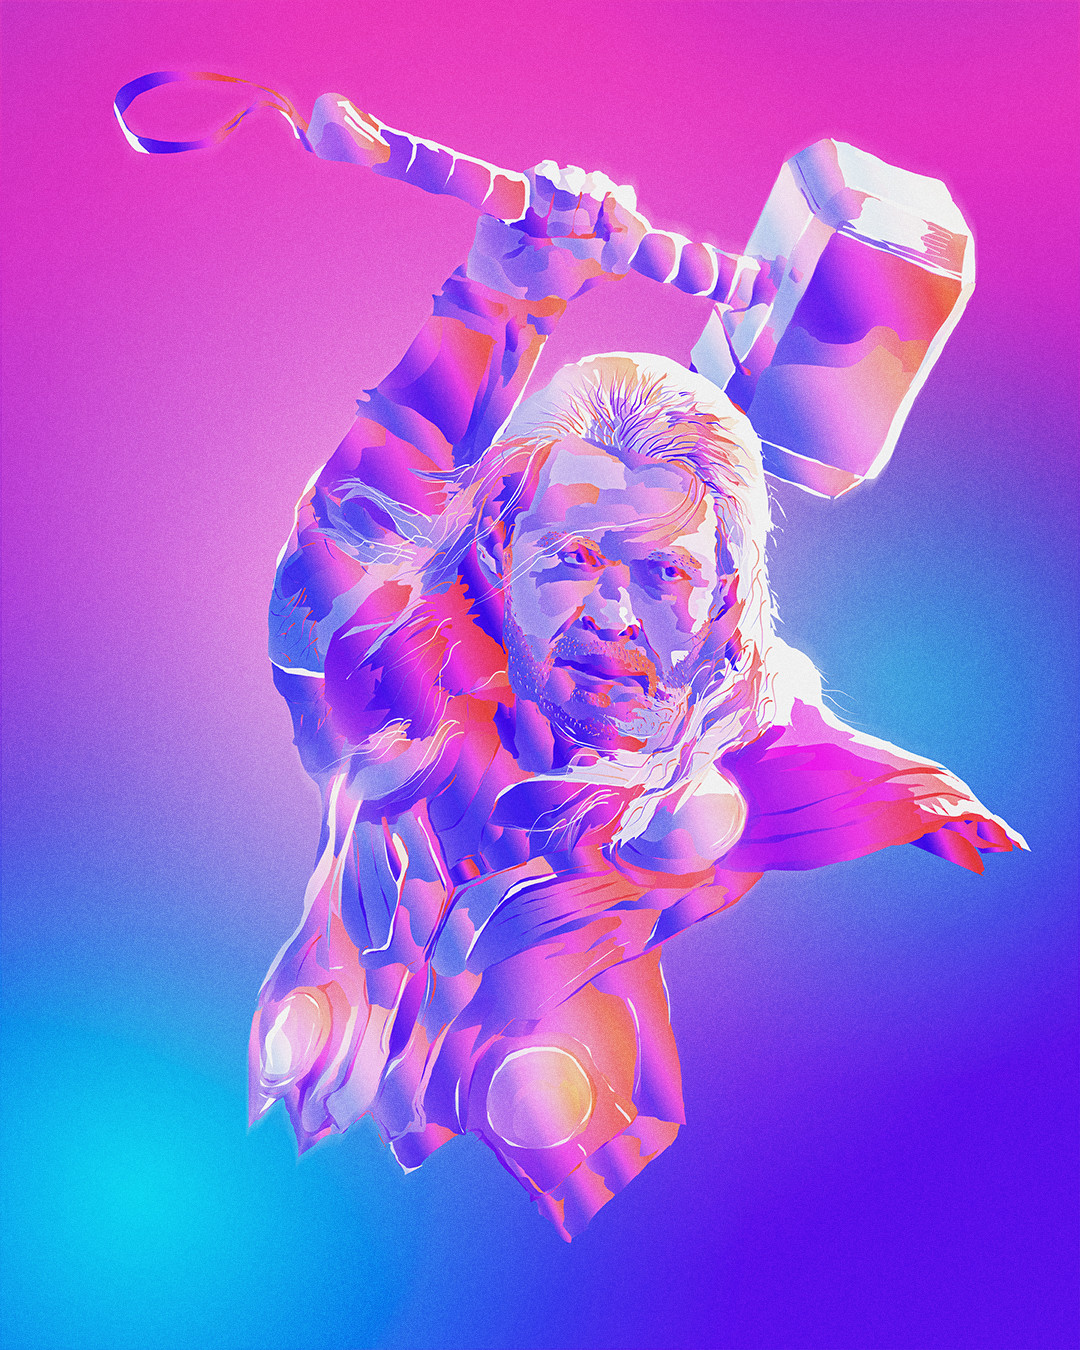 Nick tam full masaolab theavengers colorillustration thor v2